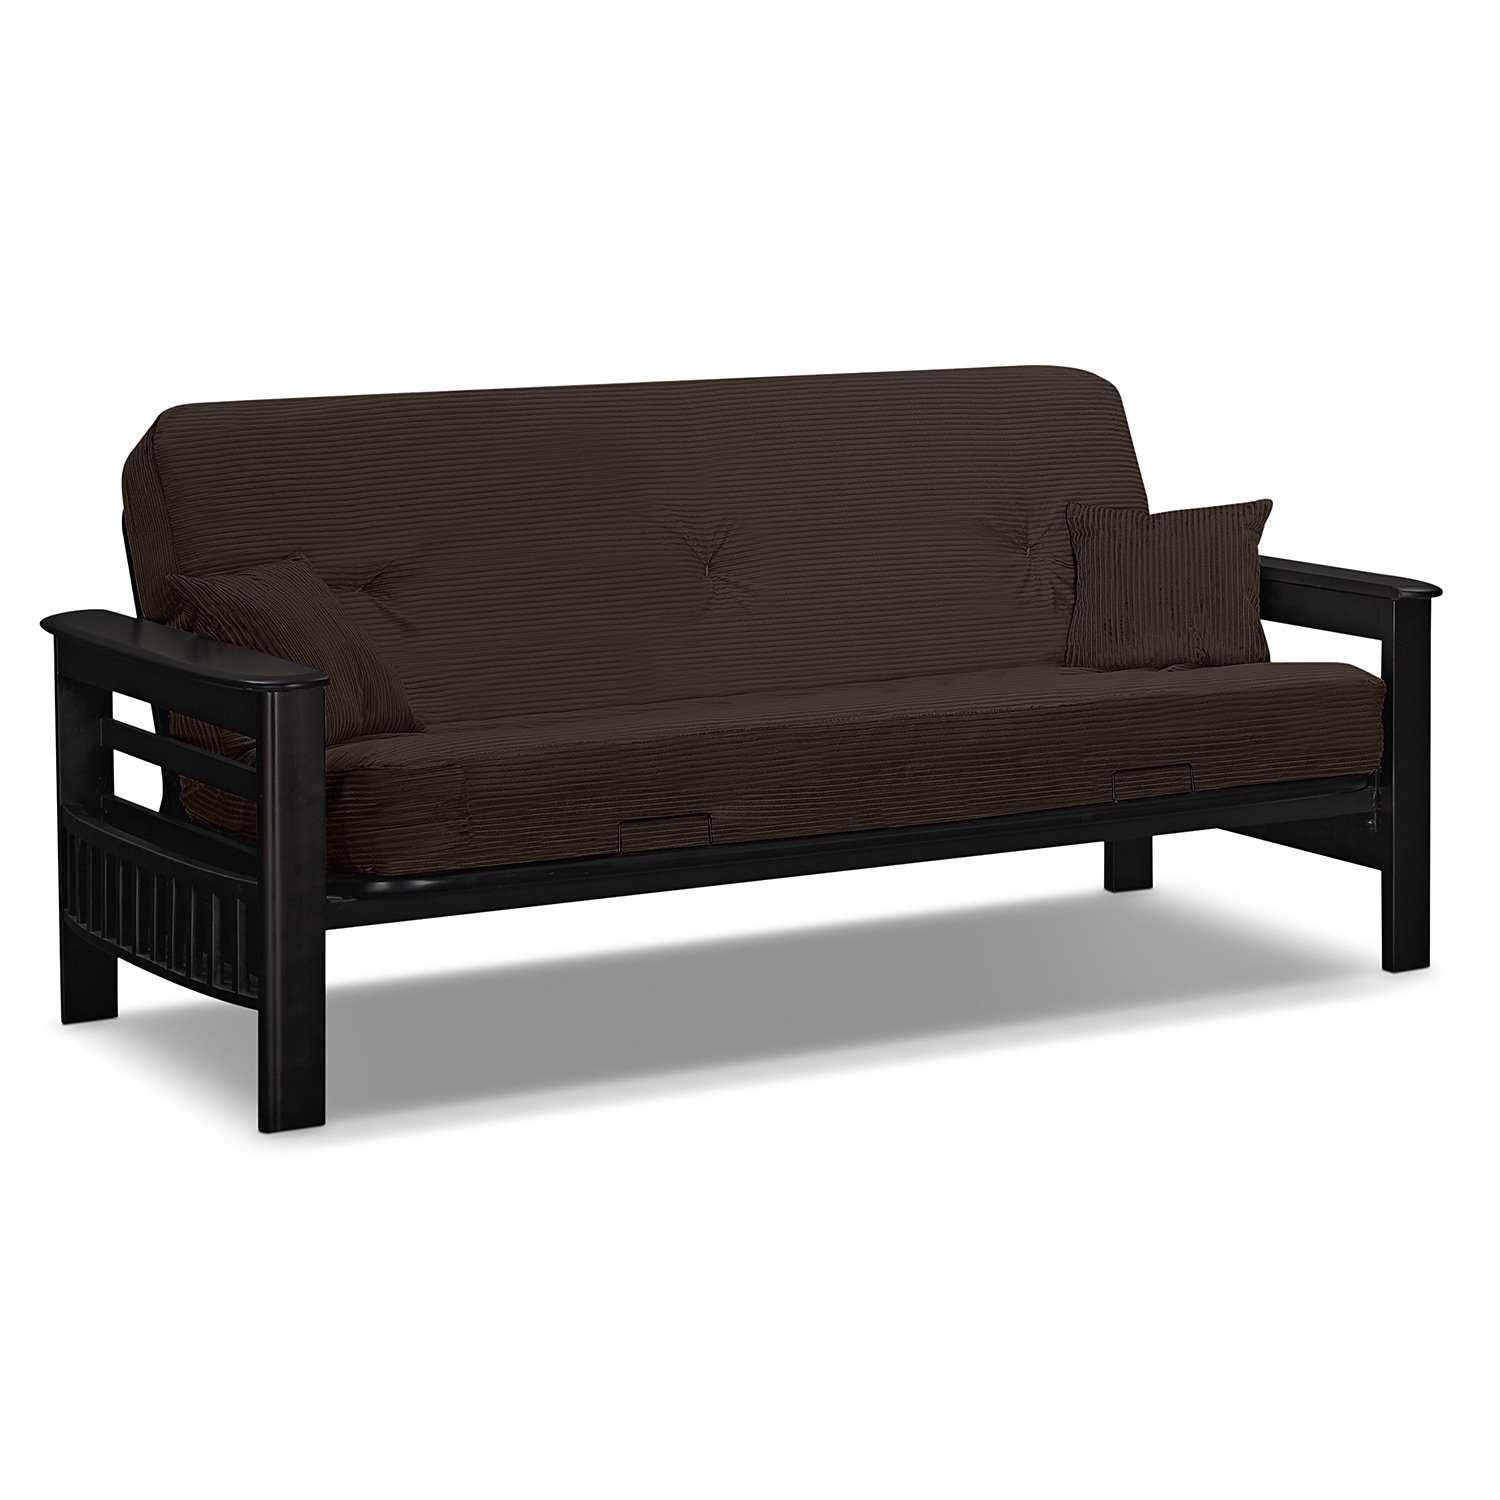 Tampa futon sofa bed value city furniture Couch futon bed